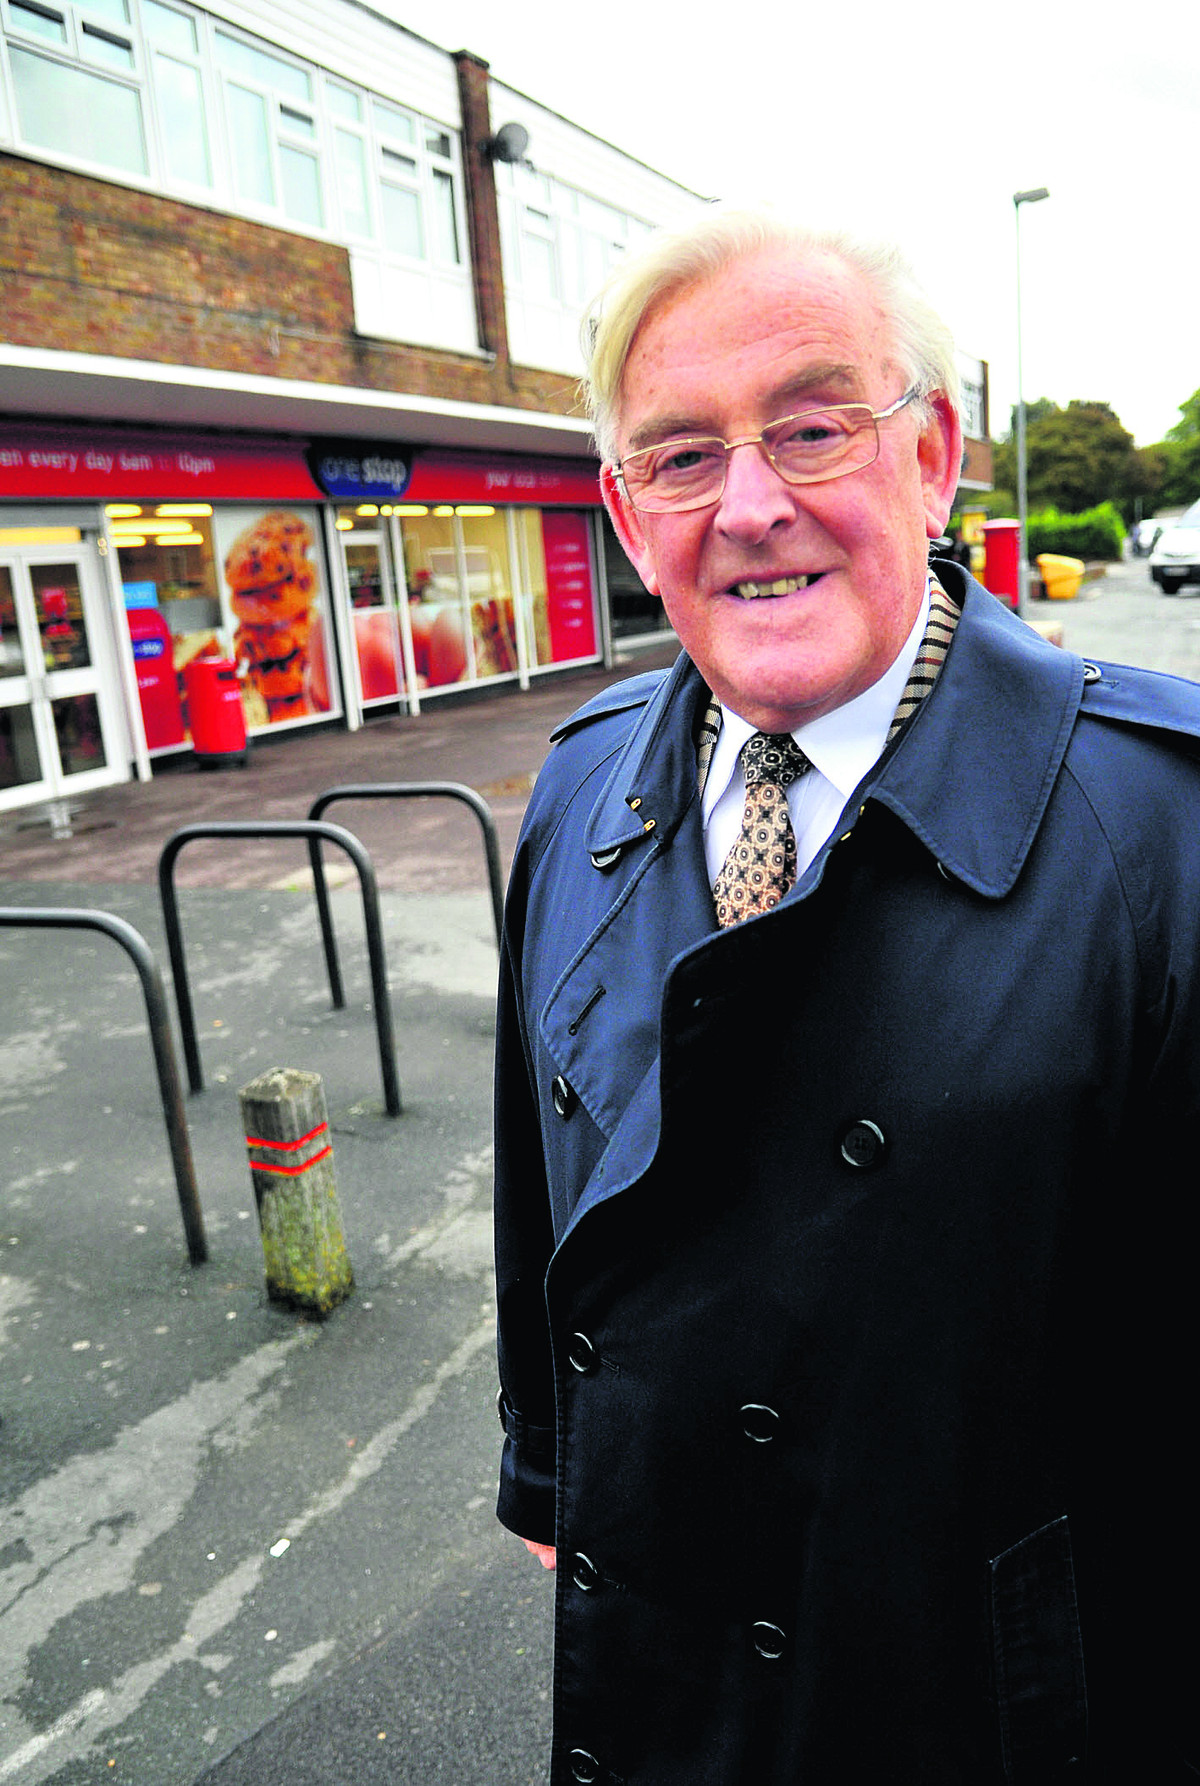 Former Swindon Council leader Coun Mike Bawden, who is battling leukaemia. He has had support from Tory group colleagues